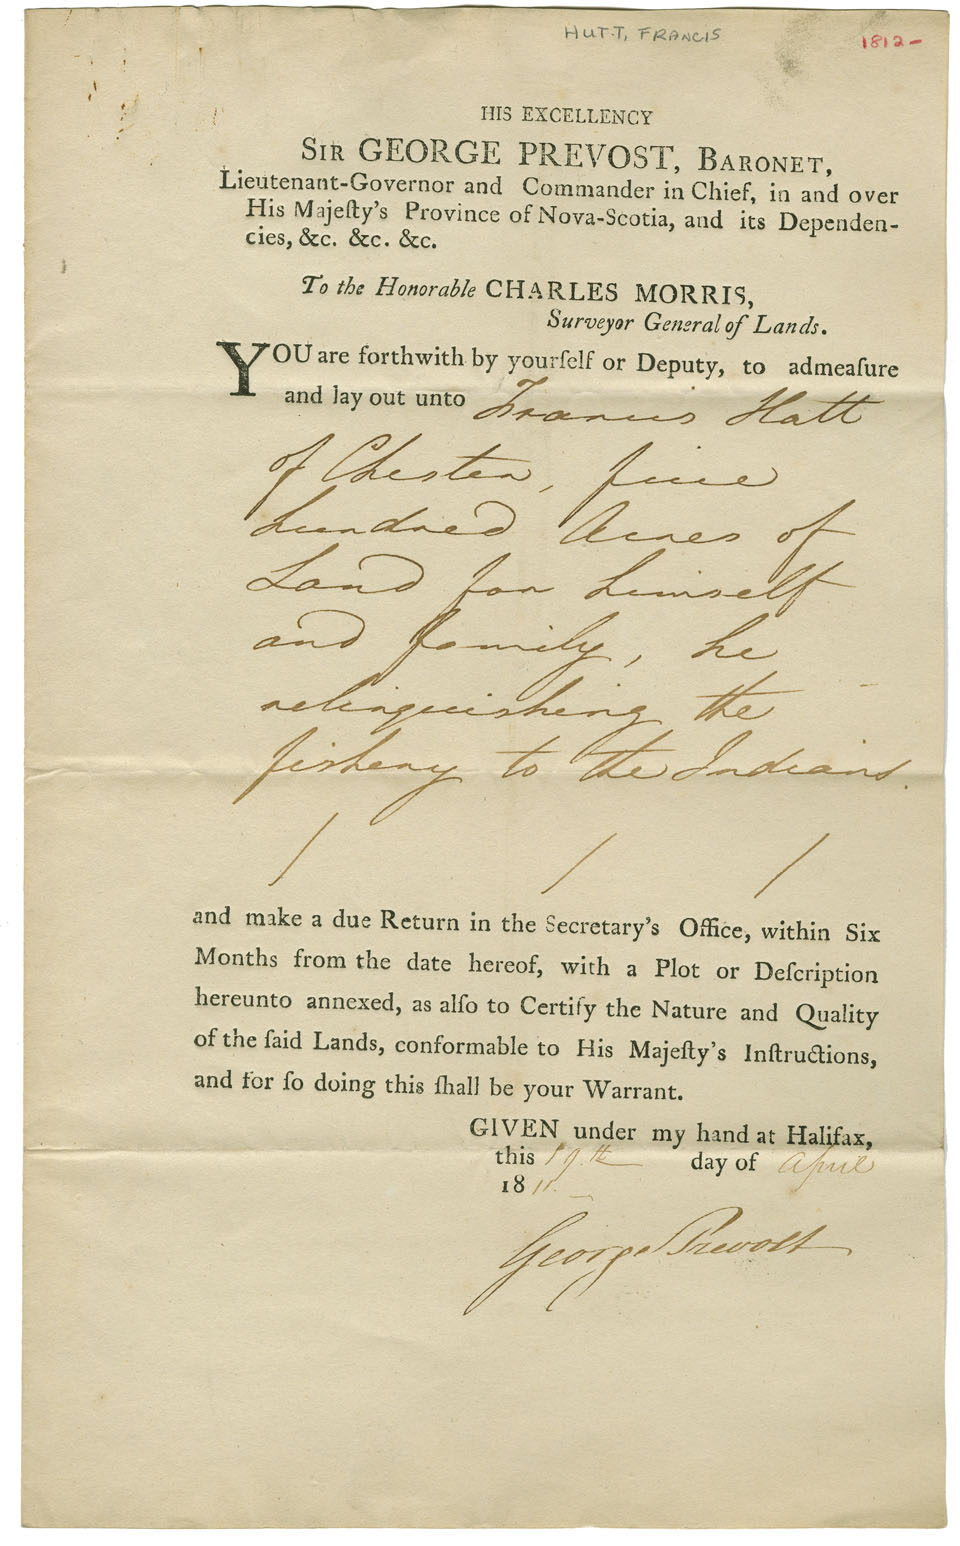 Nova scotia archives mikmaq holdings resource guide petition by hutt for land in lieu of lands at chester relinquished for the mikmaq date 1812 reference no nova scotia department of lands and forests solutioingenieria Images